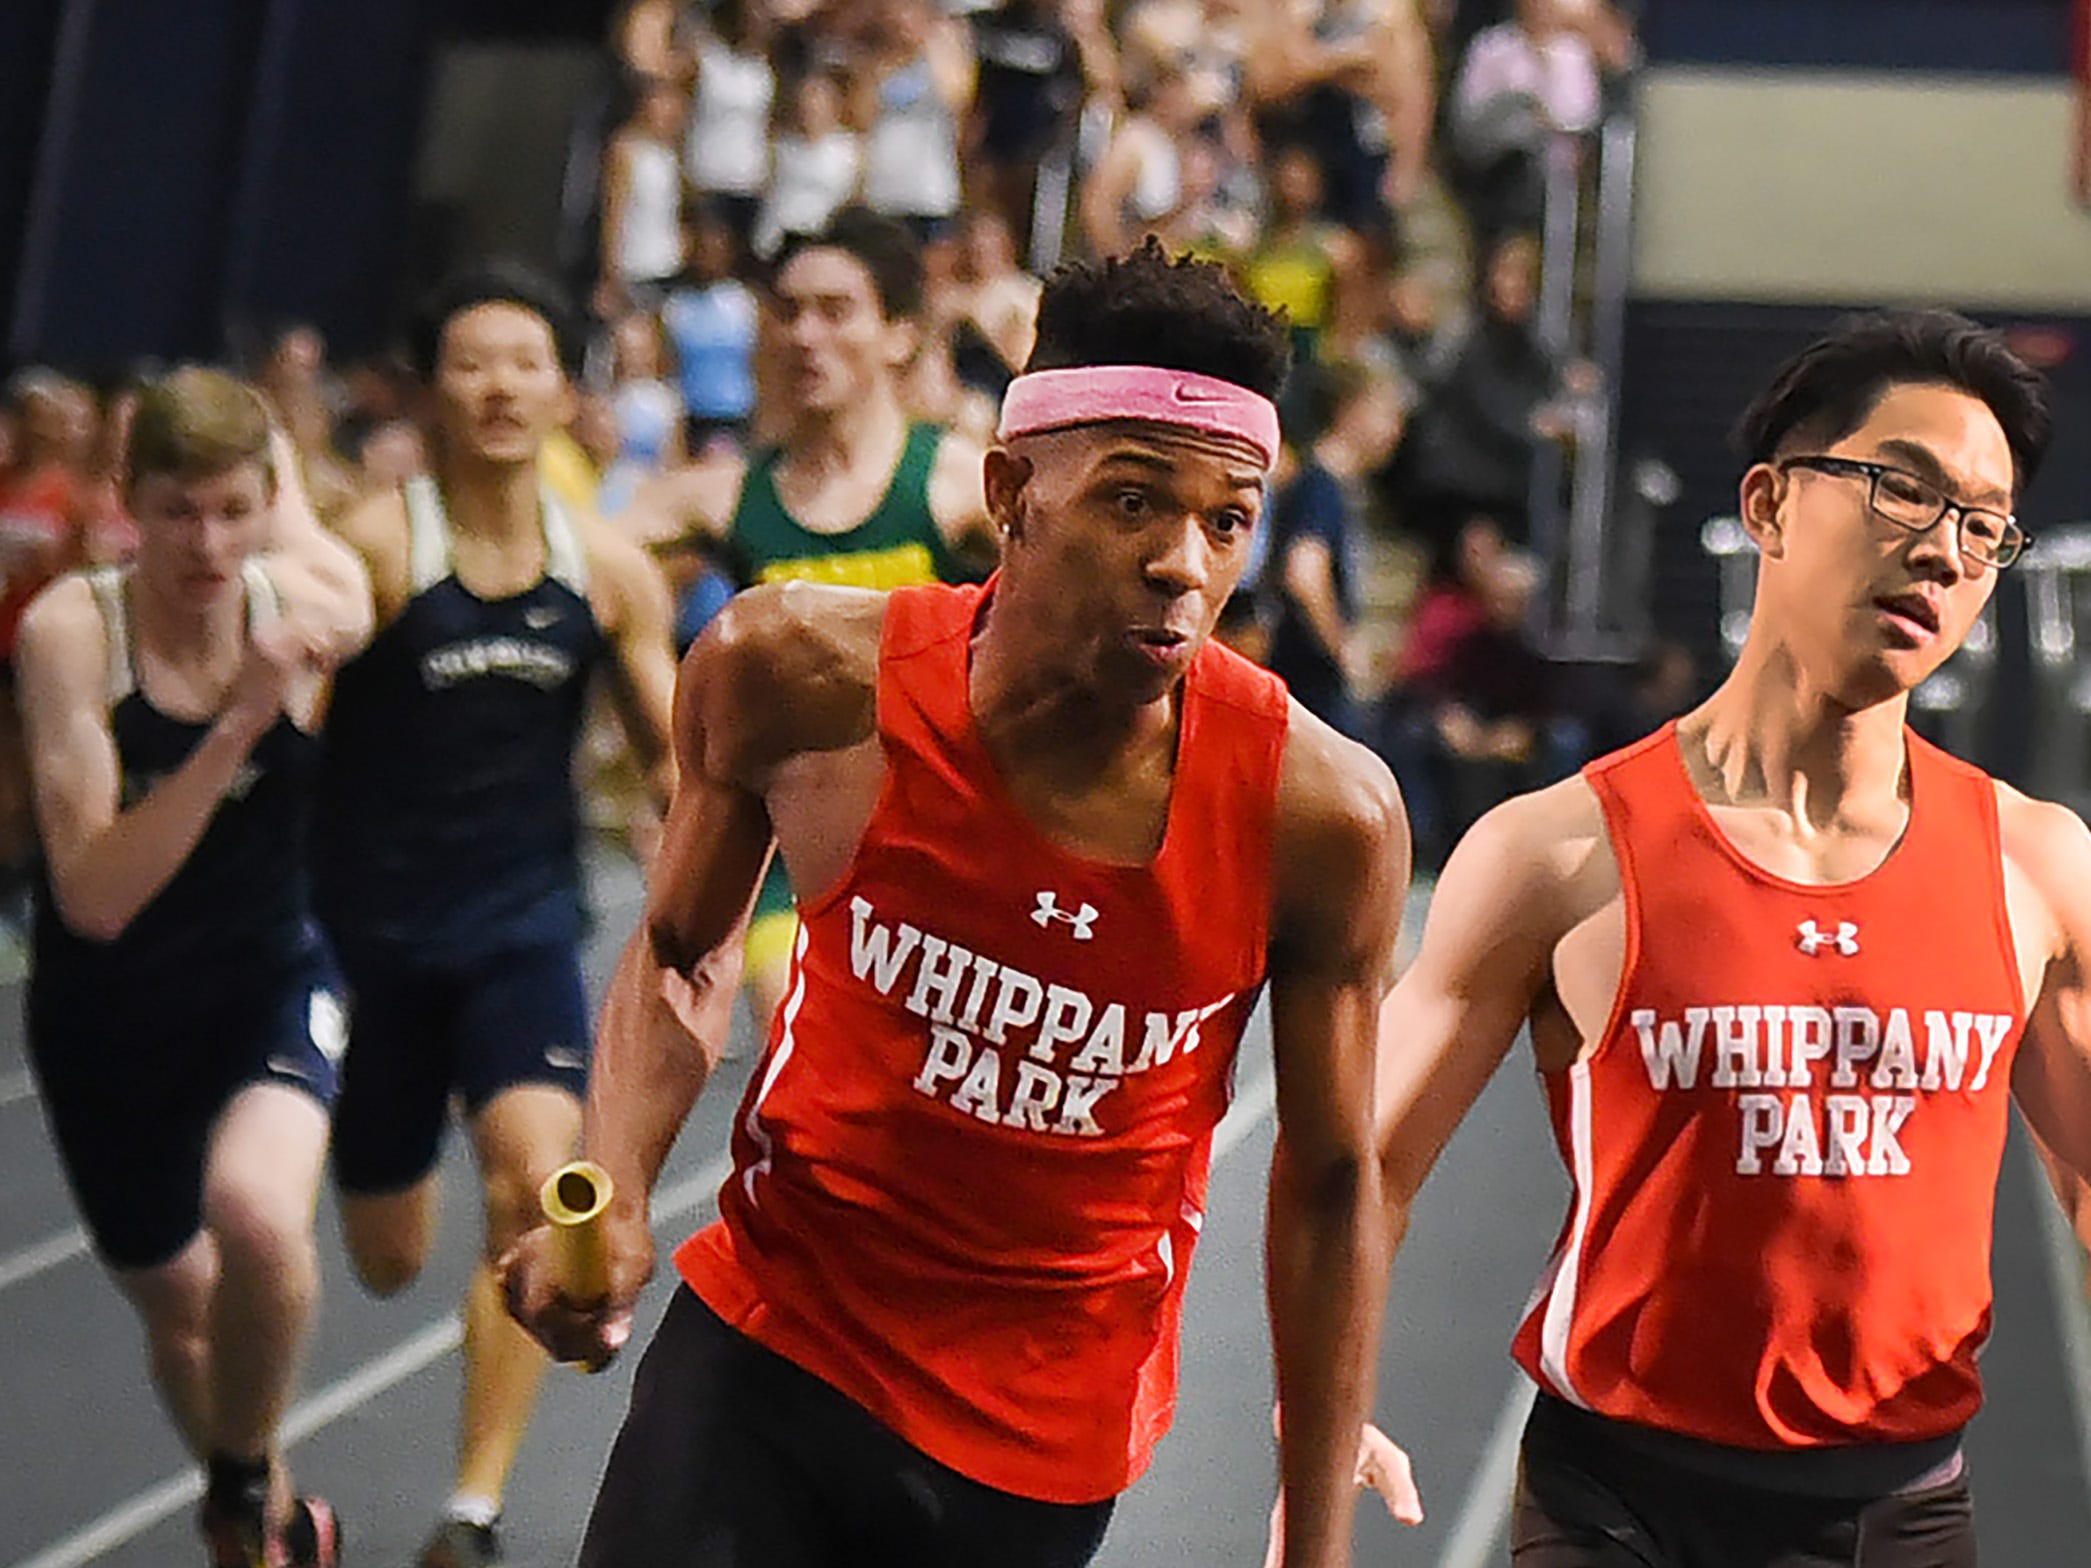 Whippany Park senior Christian Martin, who plans to run at Cornell, carries the baton to victory during the 4x200 at Morris County Relays at Drew University in Madison on 01/09/19.